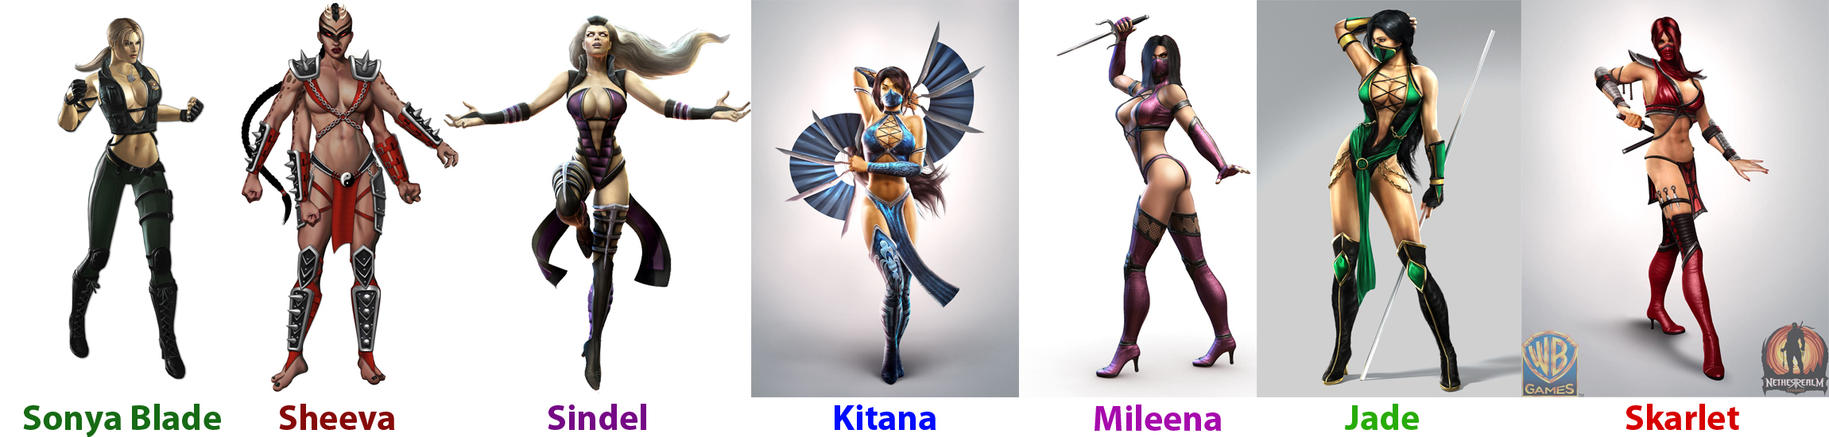 Mortal Kombat girls by Algono Images - Frompo